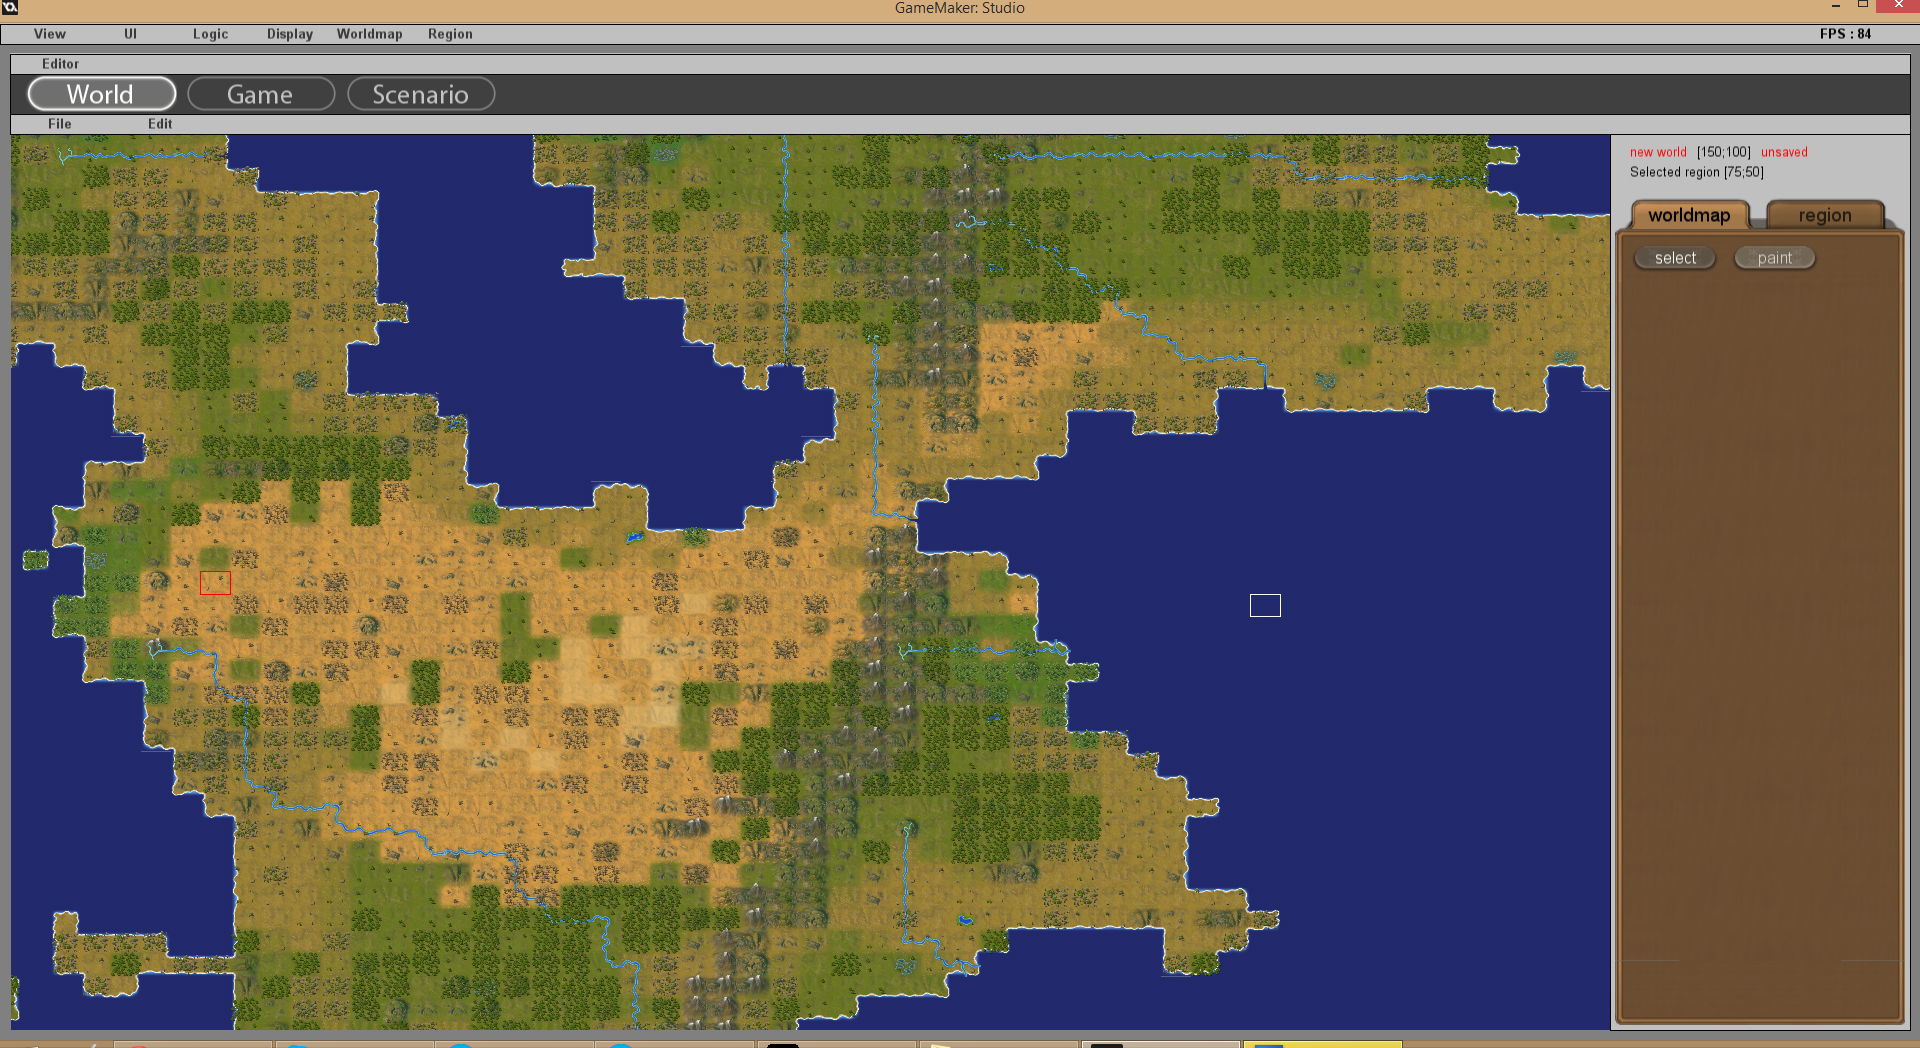 February 2015 unlike before and now that worldmaps are potentially much bigger the region generation will potentially happen dynamically during the game whenever a gumiabroncs Gallery